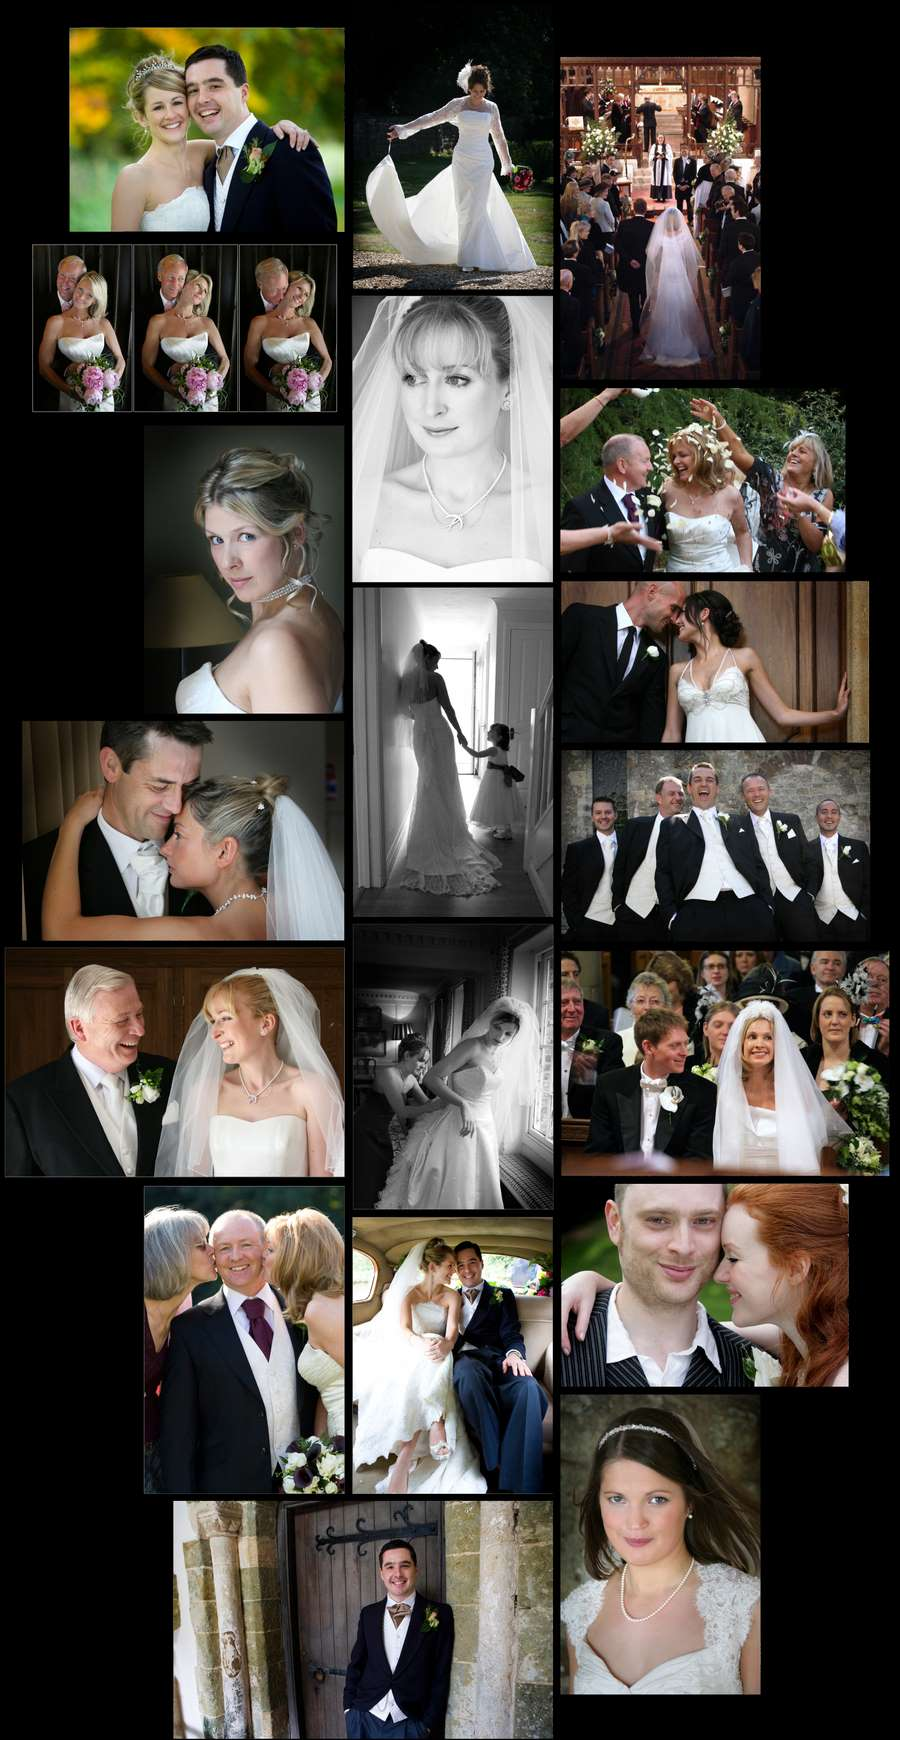 Wedding photography at Tylney Hall, Rotherwick, in Hampshire and venues throughout Hampshire, Dorset and Wiltshire by Romsey professional photographer, Kate Jackson.